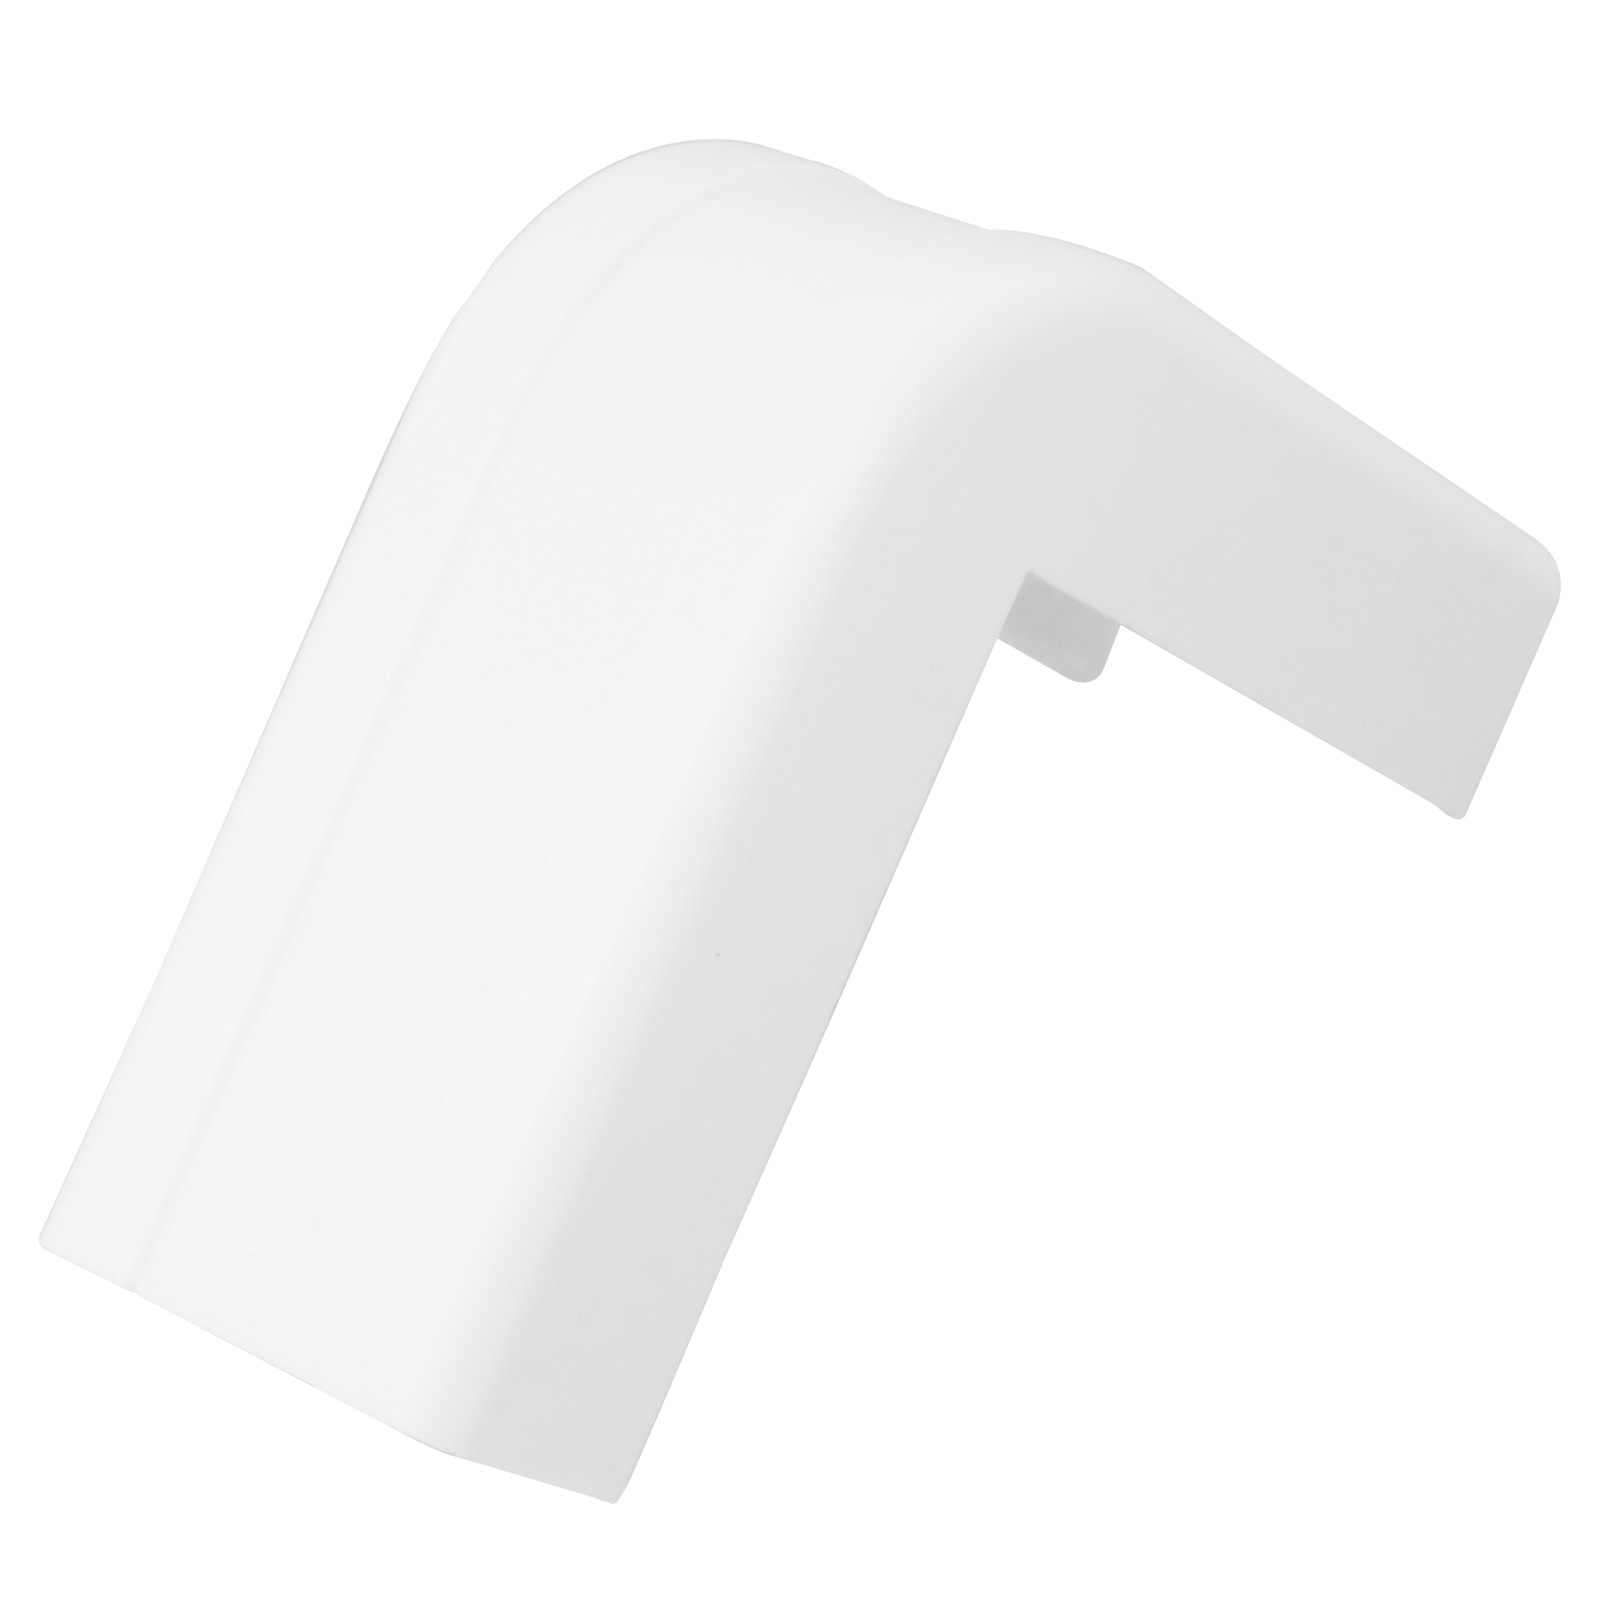 1-1/4 inch Outside Corner and Base for Raceway - White, 5pcs/bag